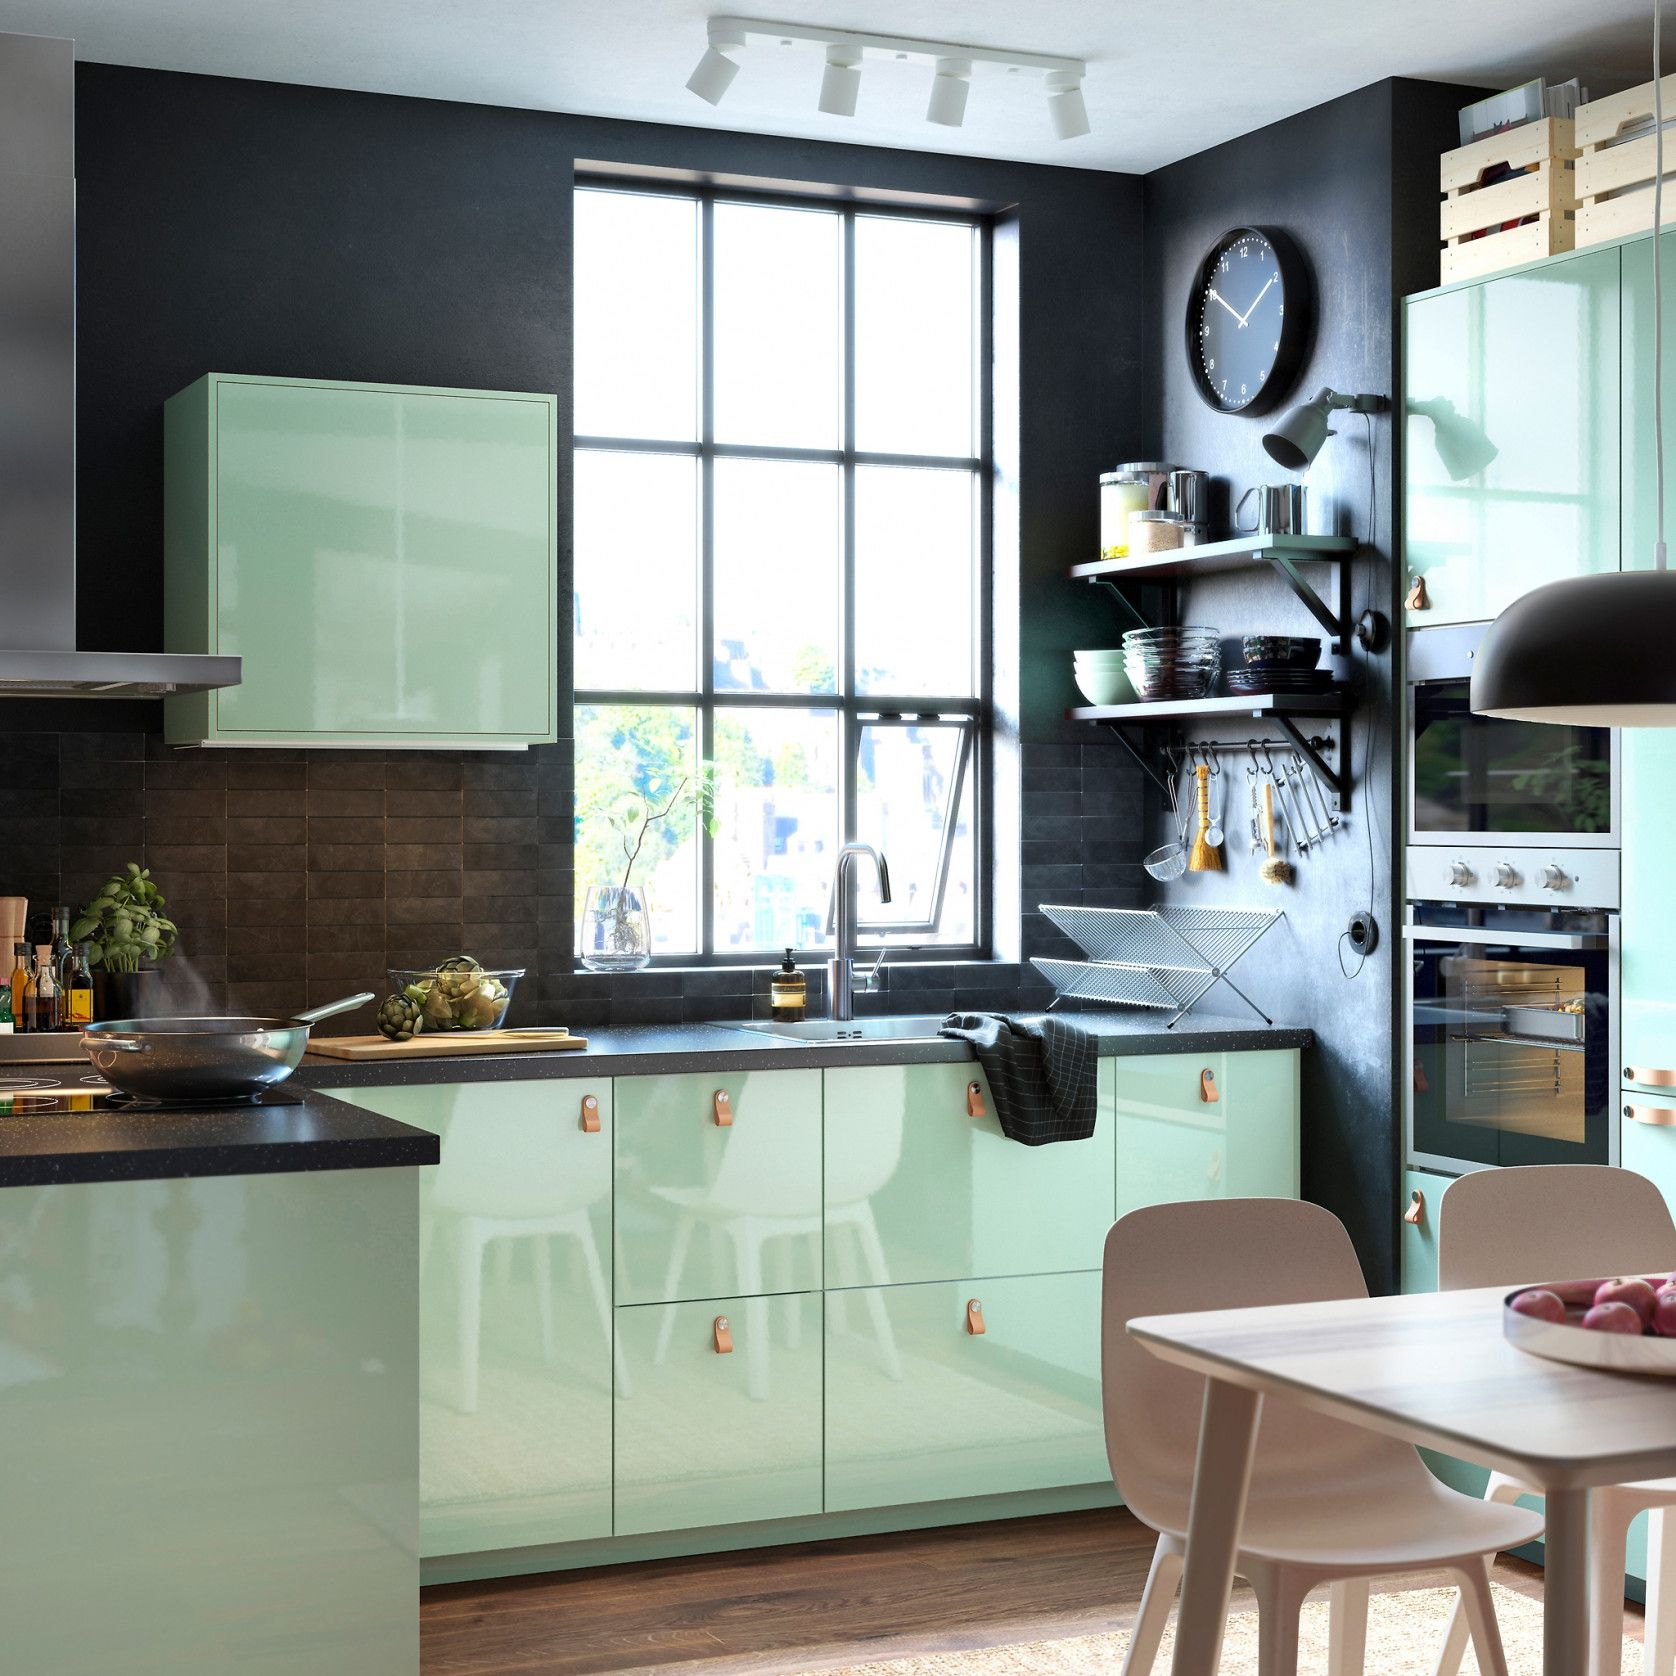 99 Green Kitchen Cabinets Ikea Kitchen Cabinets Countertops Ideas Check More At Http Green Kitchen Cabinets Traditional Kitchen Design Light Green Kitchen